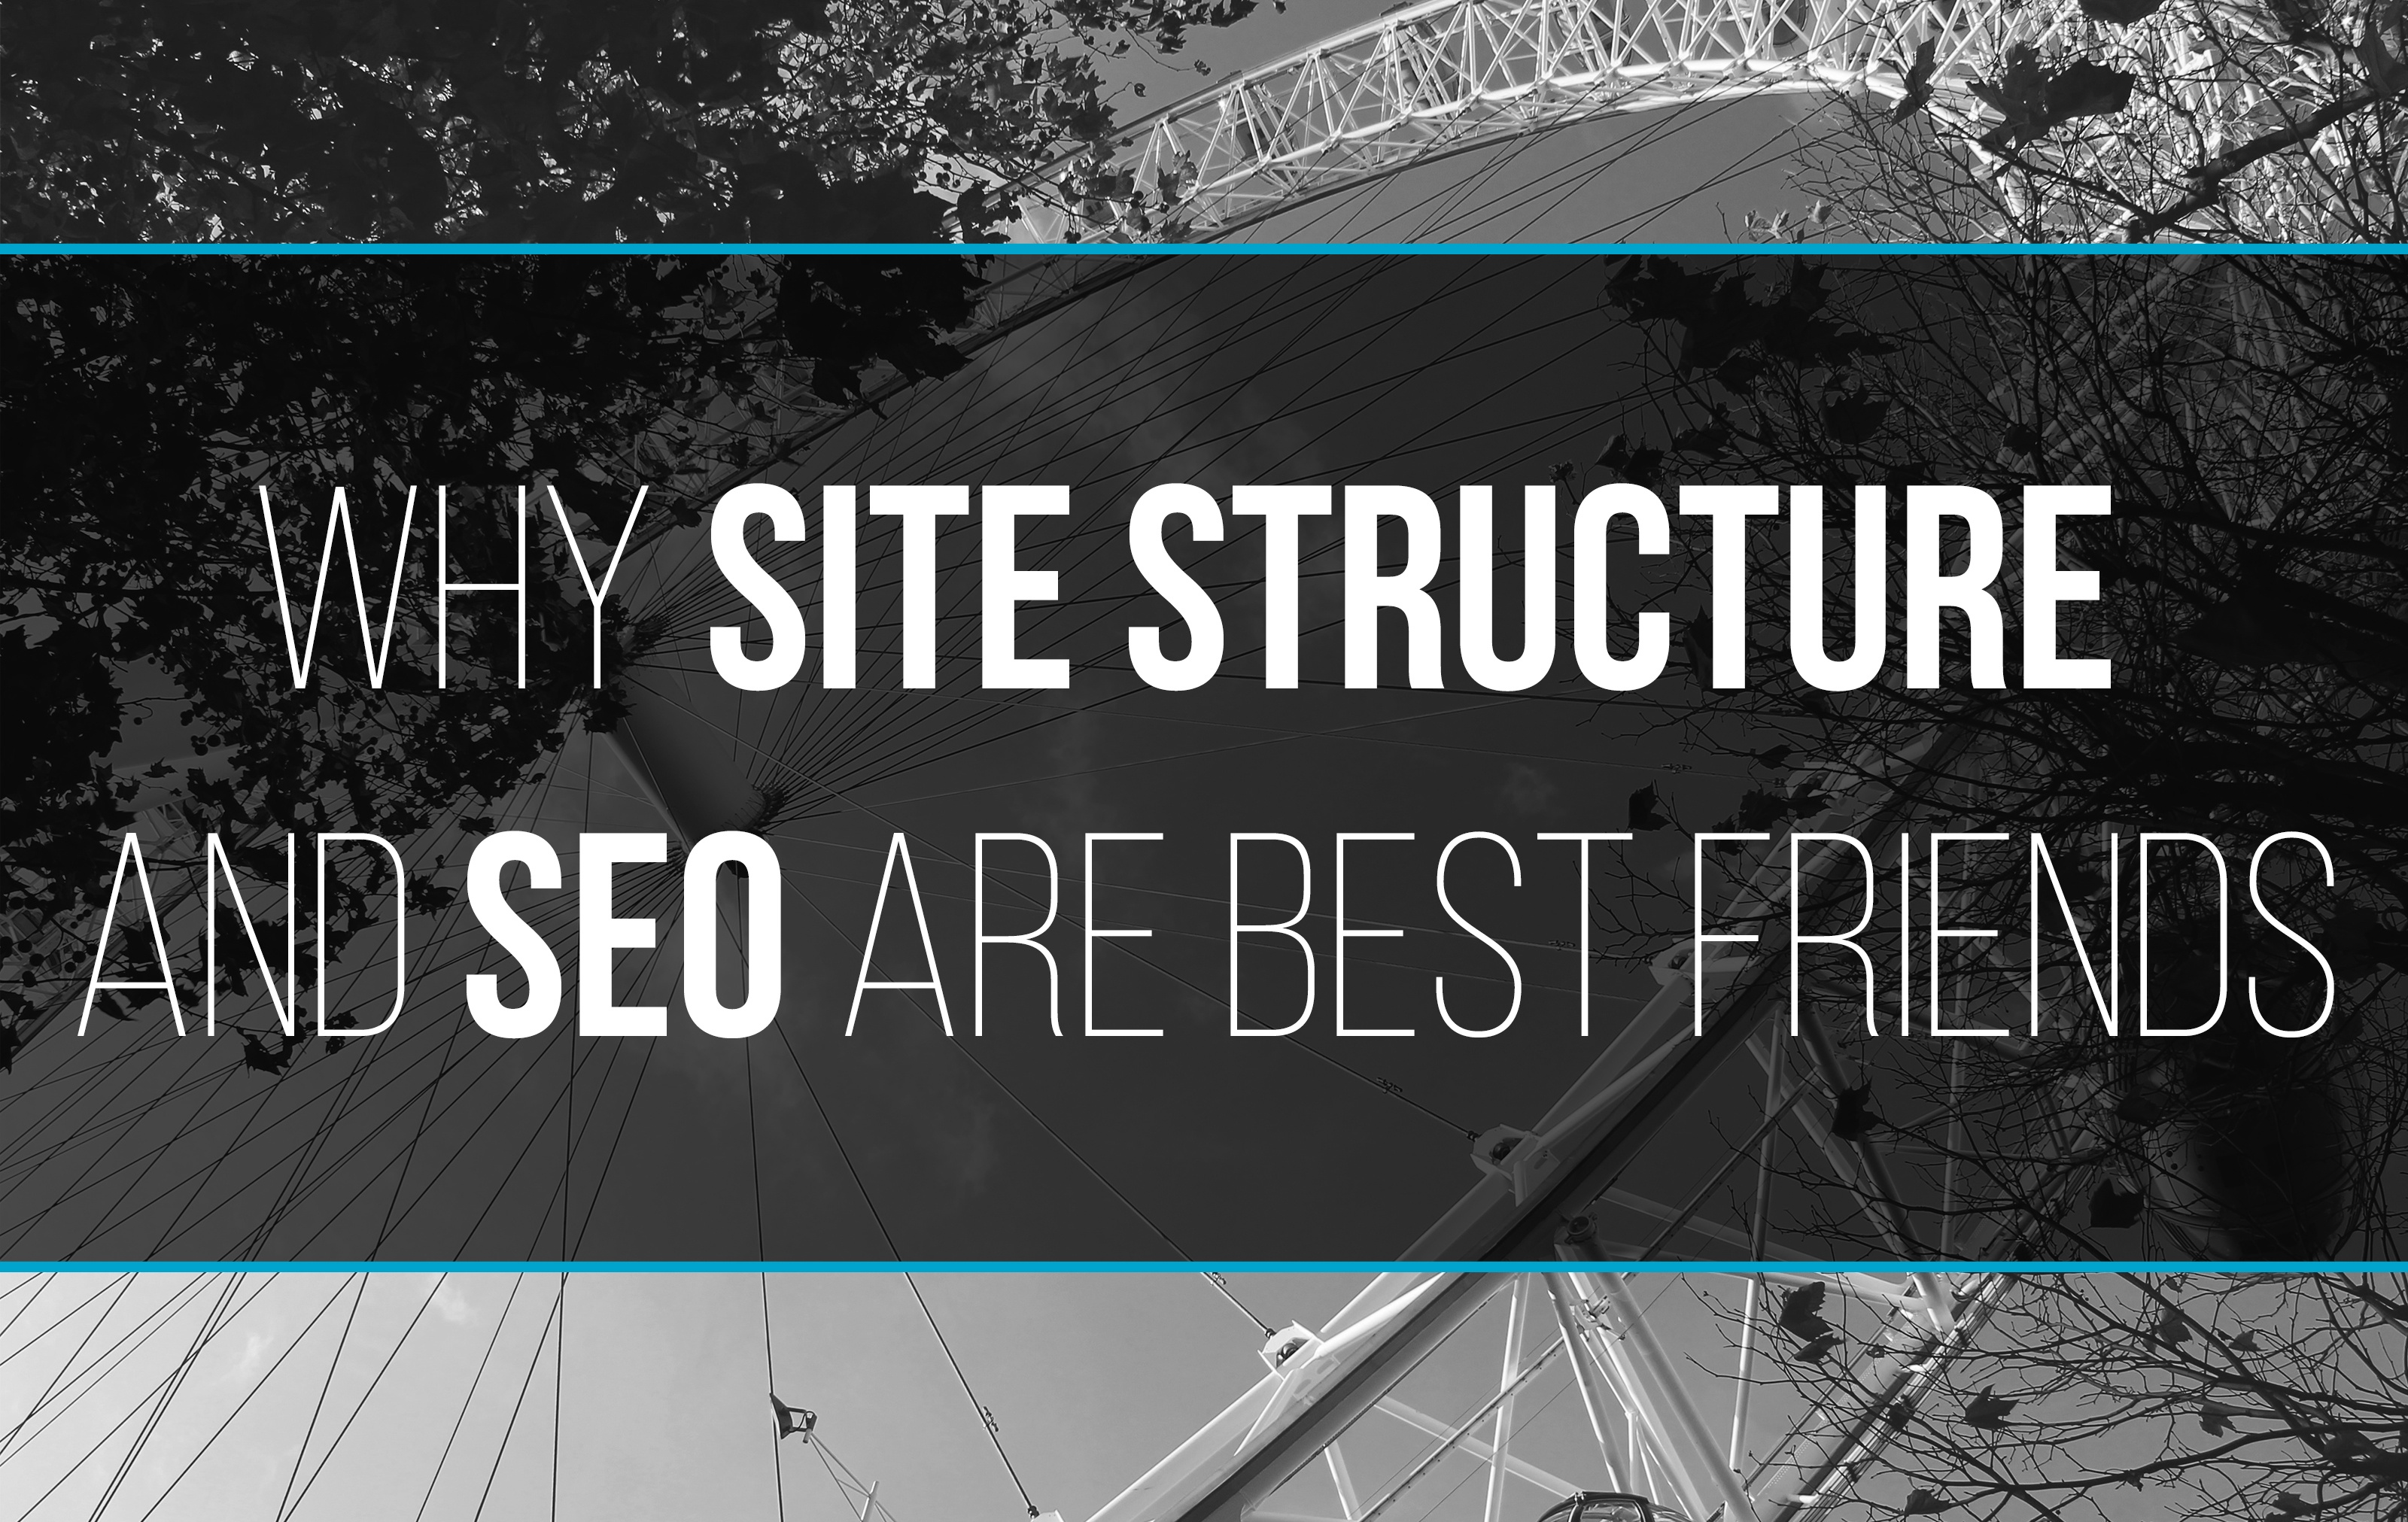 Site_Structure__SEO.jpg